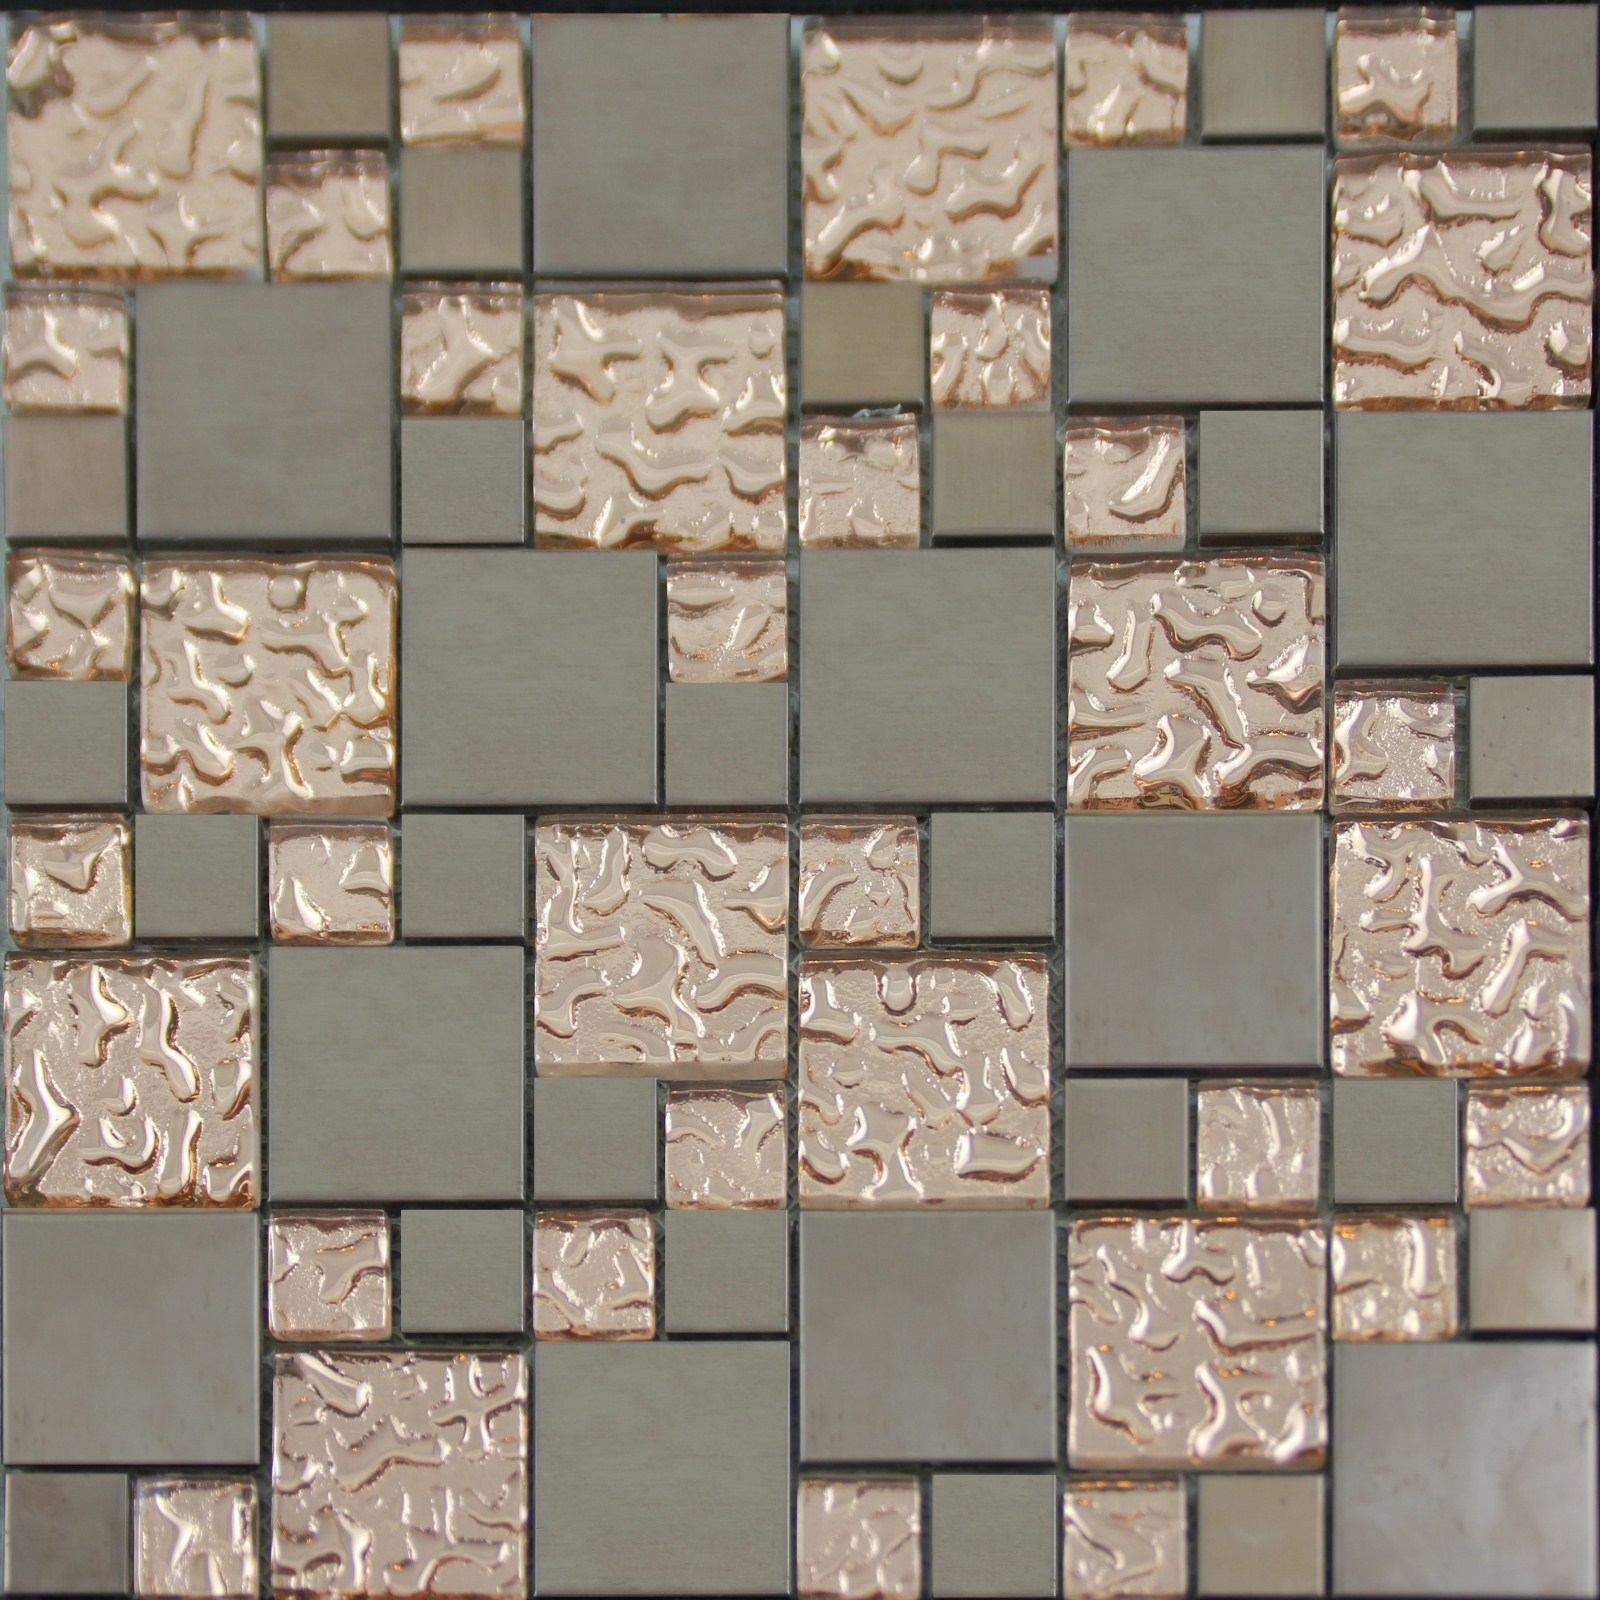 Copper glass and porcelain square mosaic tile designs plated ceramic wall tiles wall kitchen Kitchen design of tiles